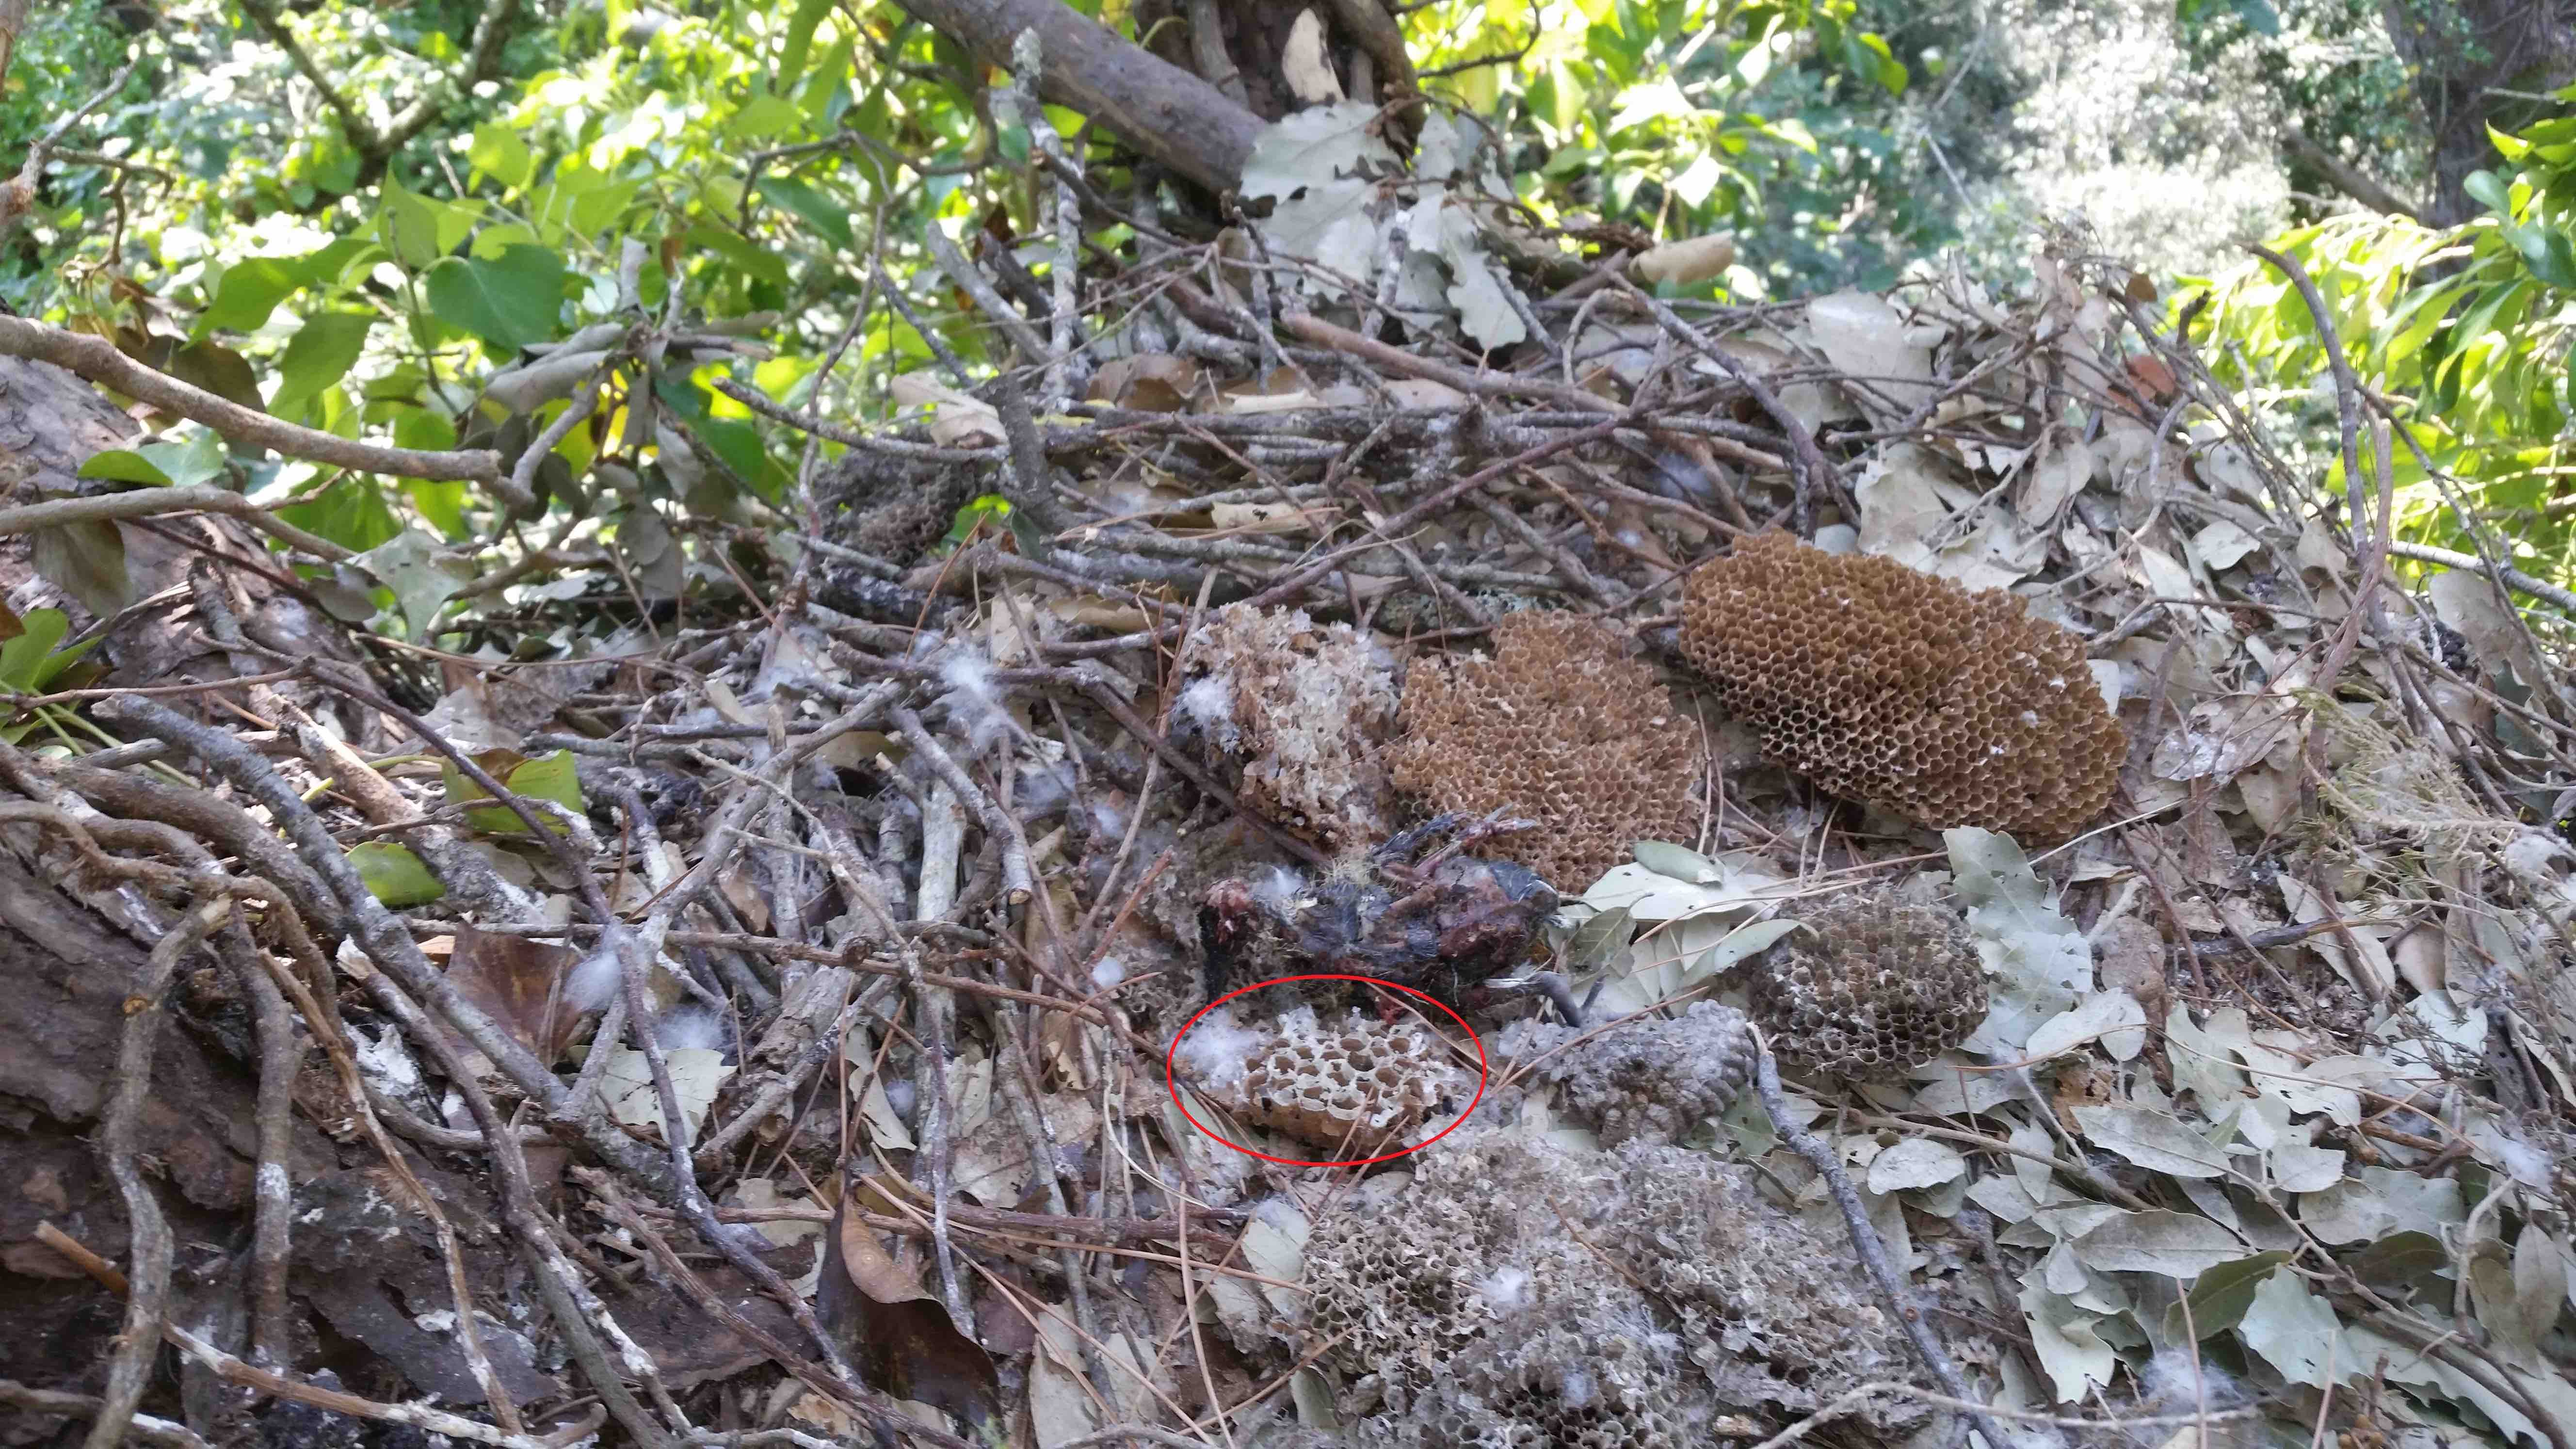 Image of the interior of a European Honey Buzzard nest, where a fragment of Asian Hornet nest is found. Credit: J. Grajera.